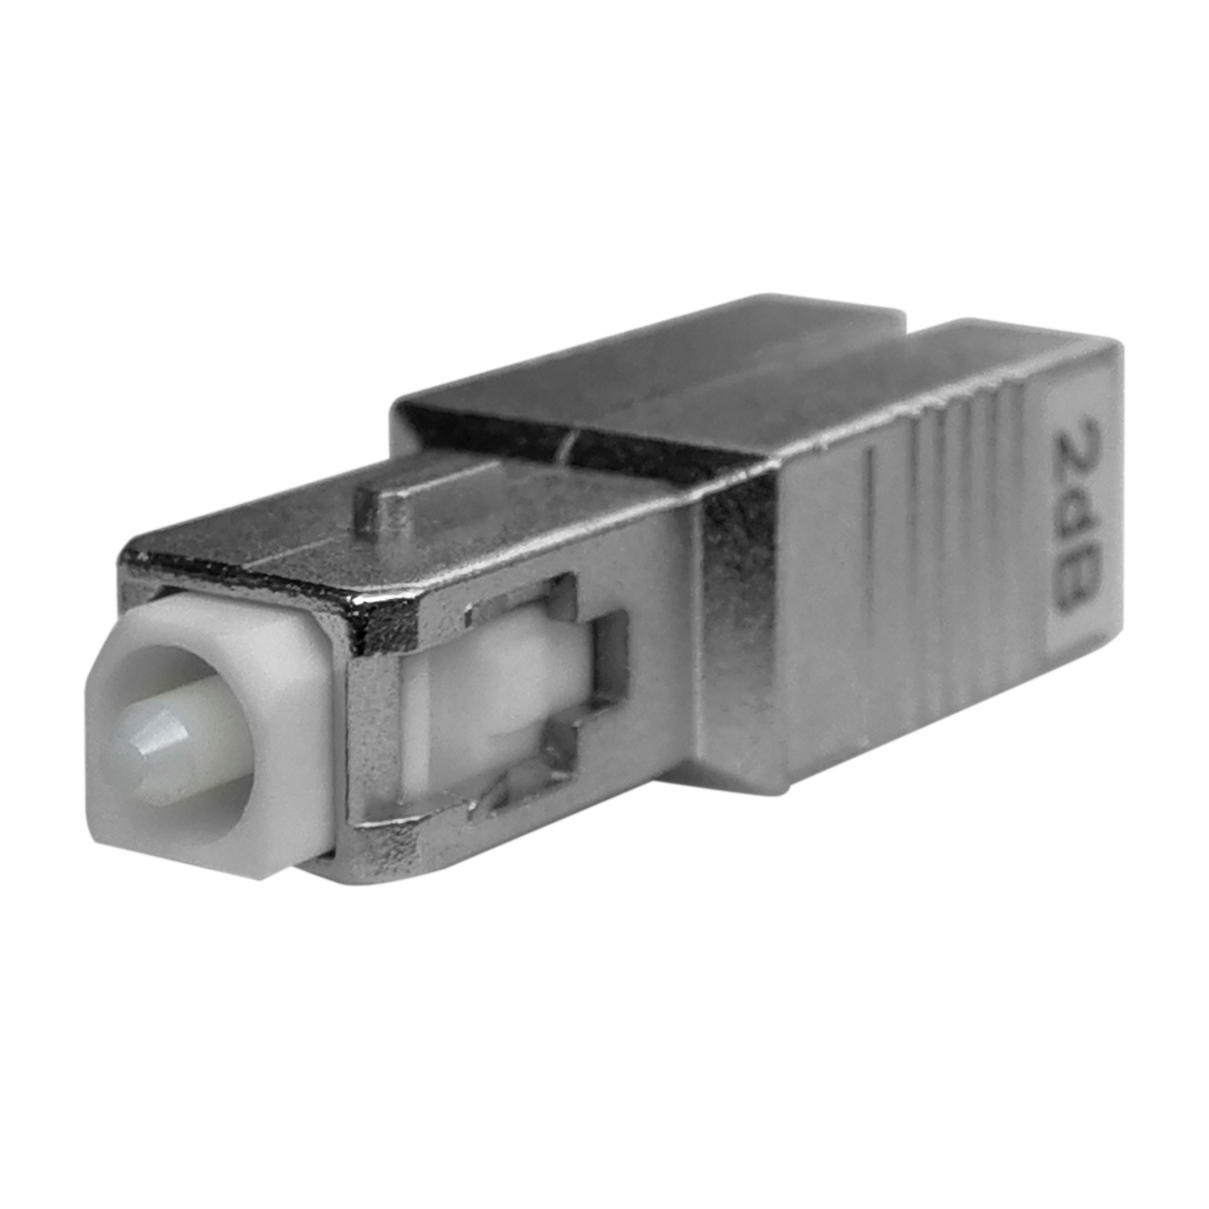 SC Male to Female - Fiber Optic Attenuator